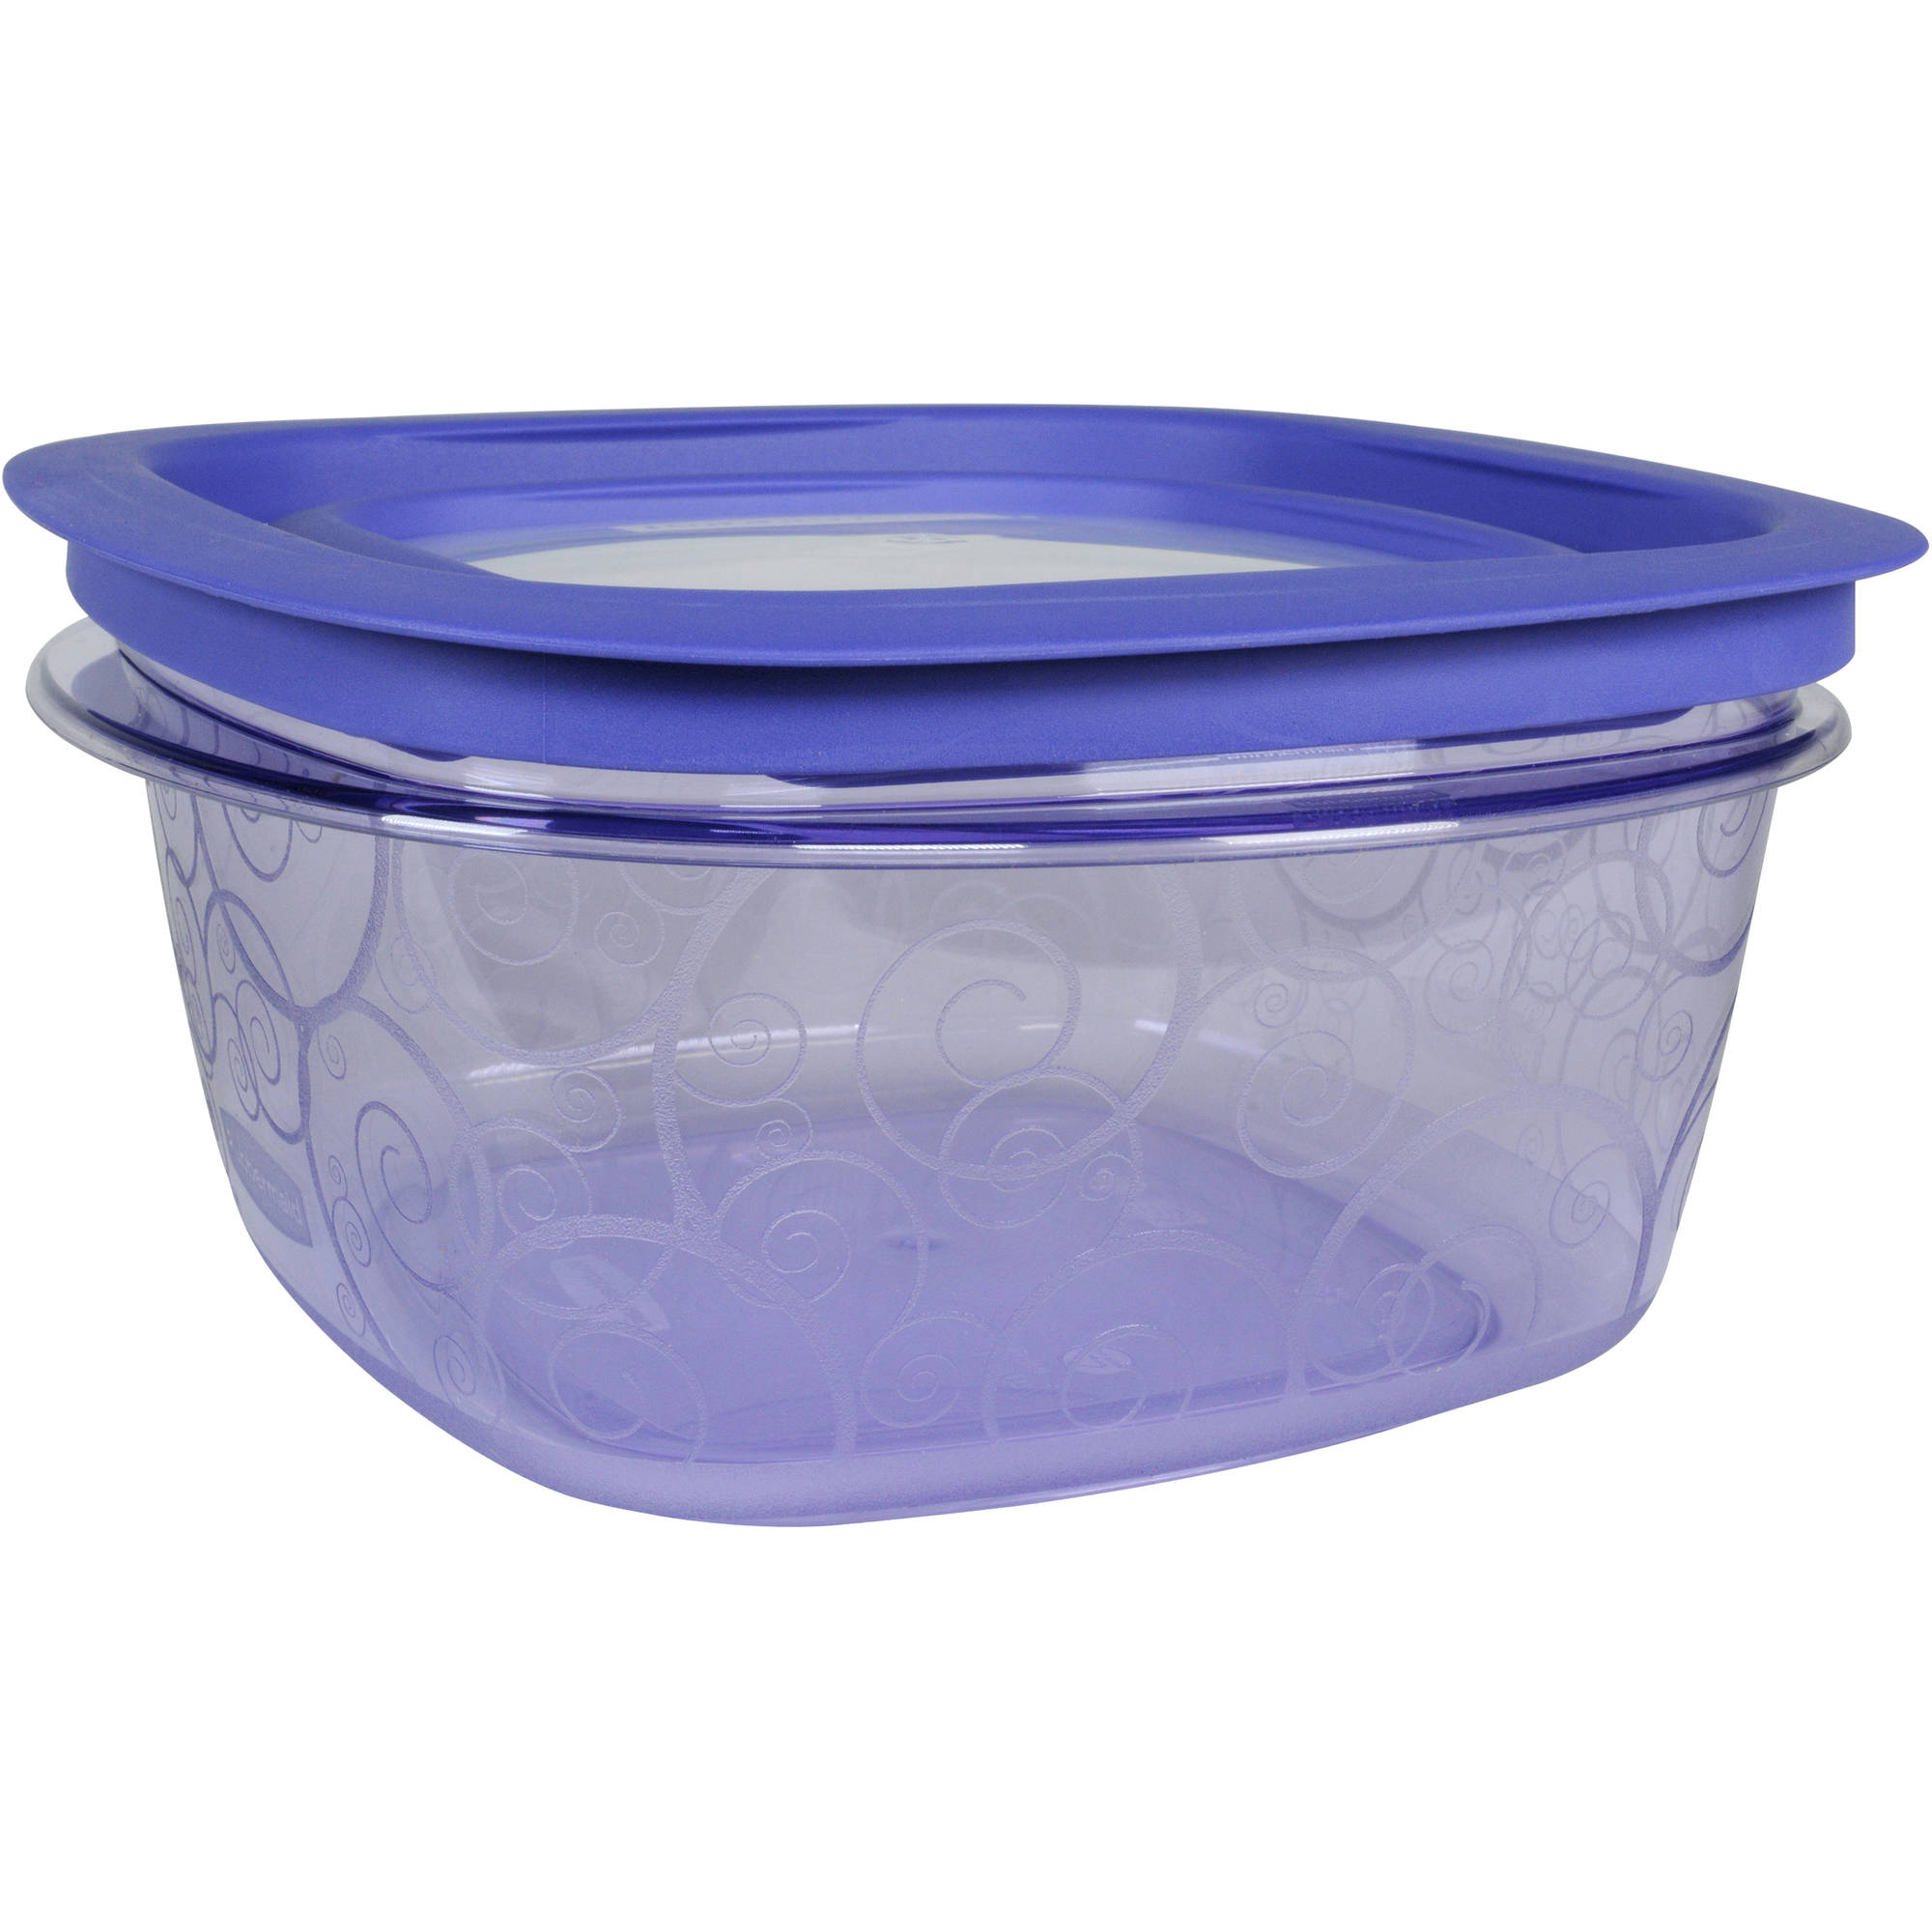 Superieur Rubbermaid Premier Easy Find Lids 5 Cup Food Storage Containers, 2 Count    Walmart.com